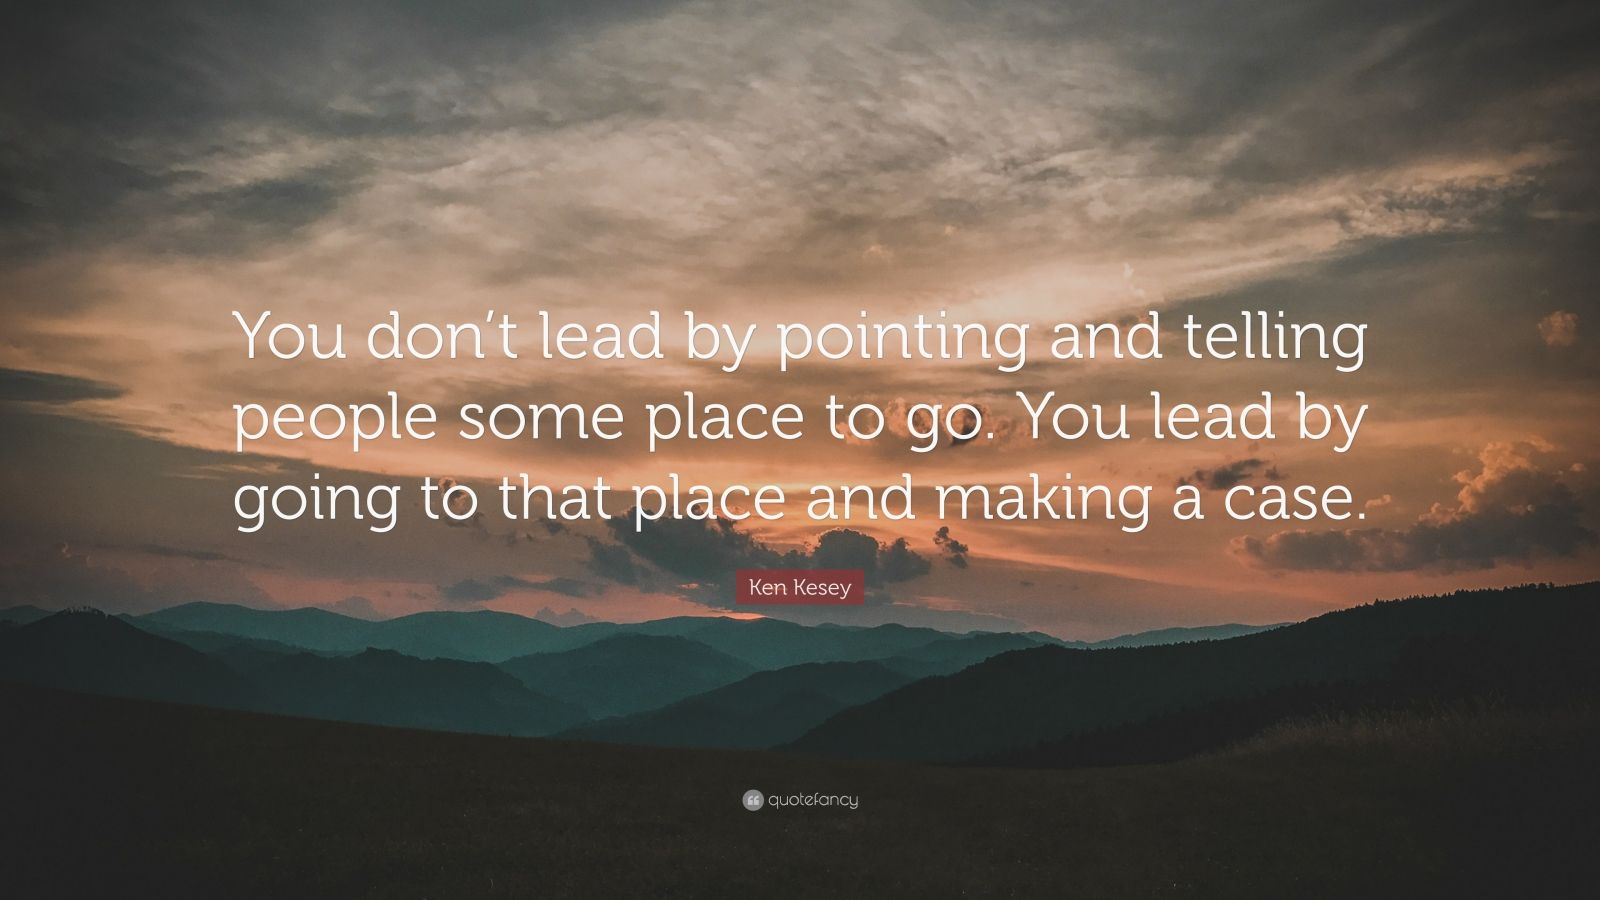 """Ken Kesey Quote: """"You don't lead by pointing and telling people some place to go. You lead by going to that place and making a case."""""""